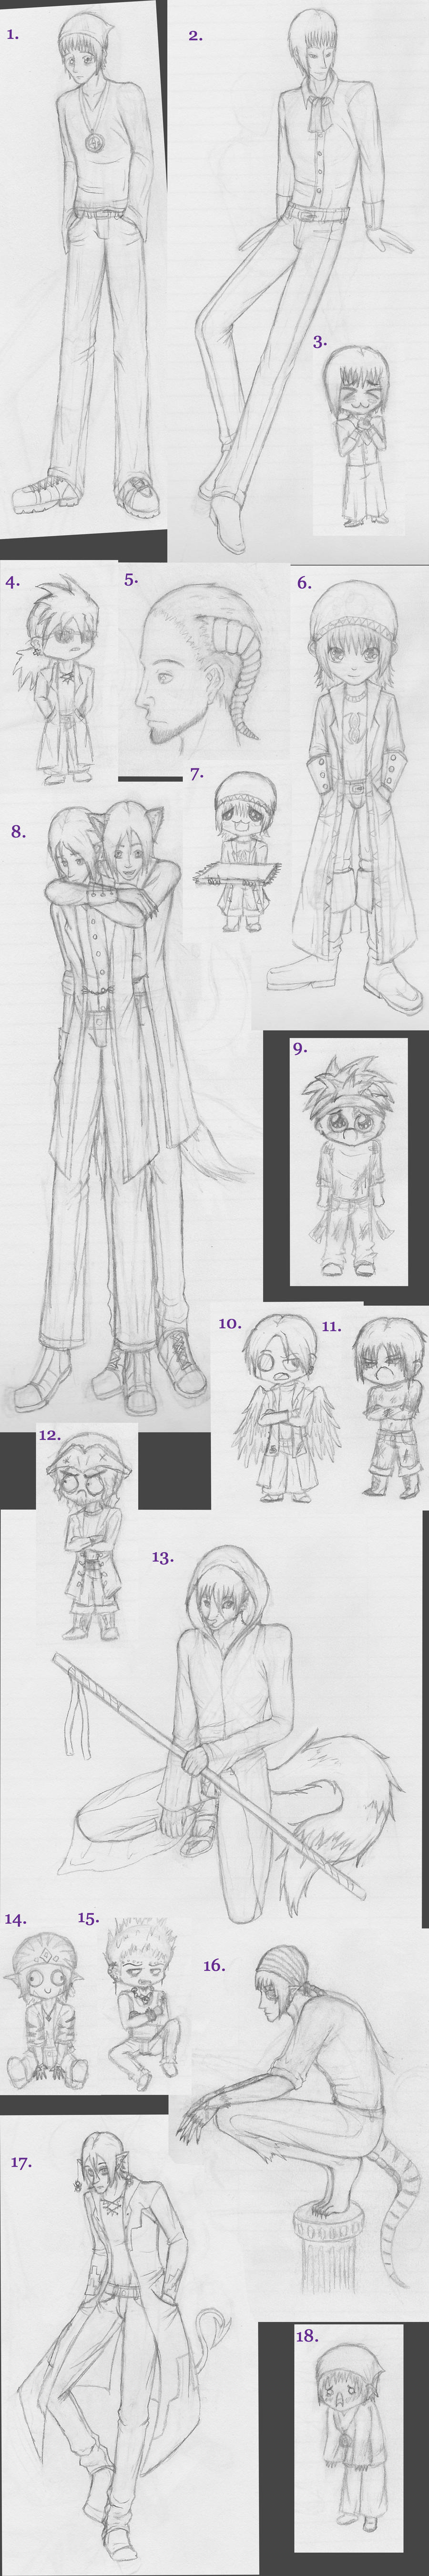 All dem sketches by Tremlin